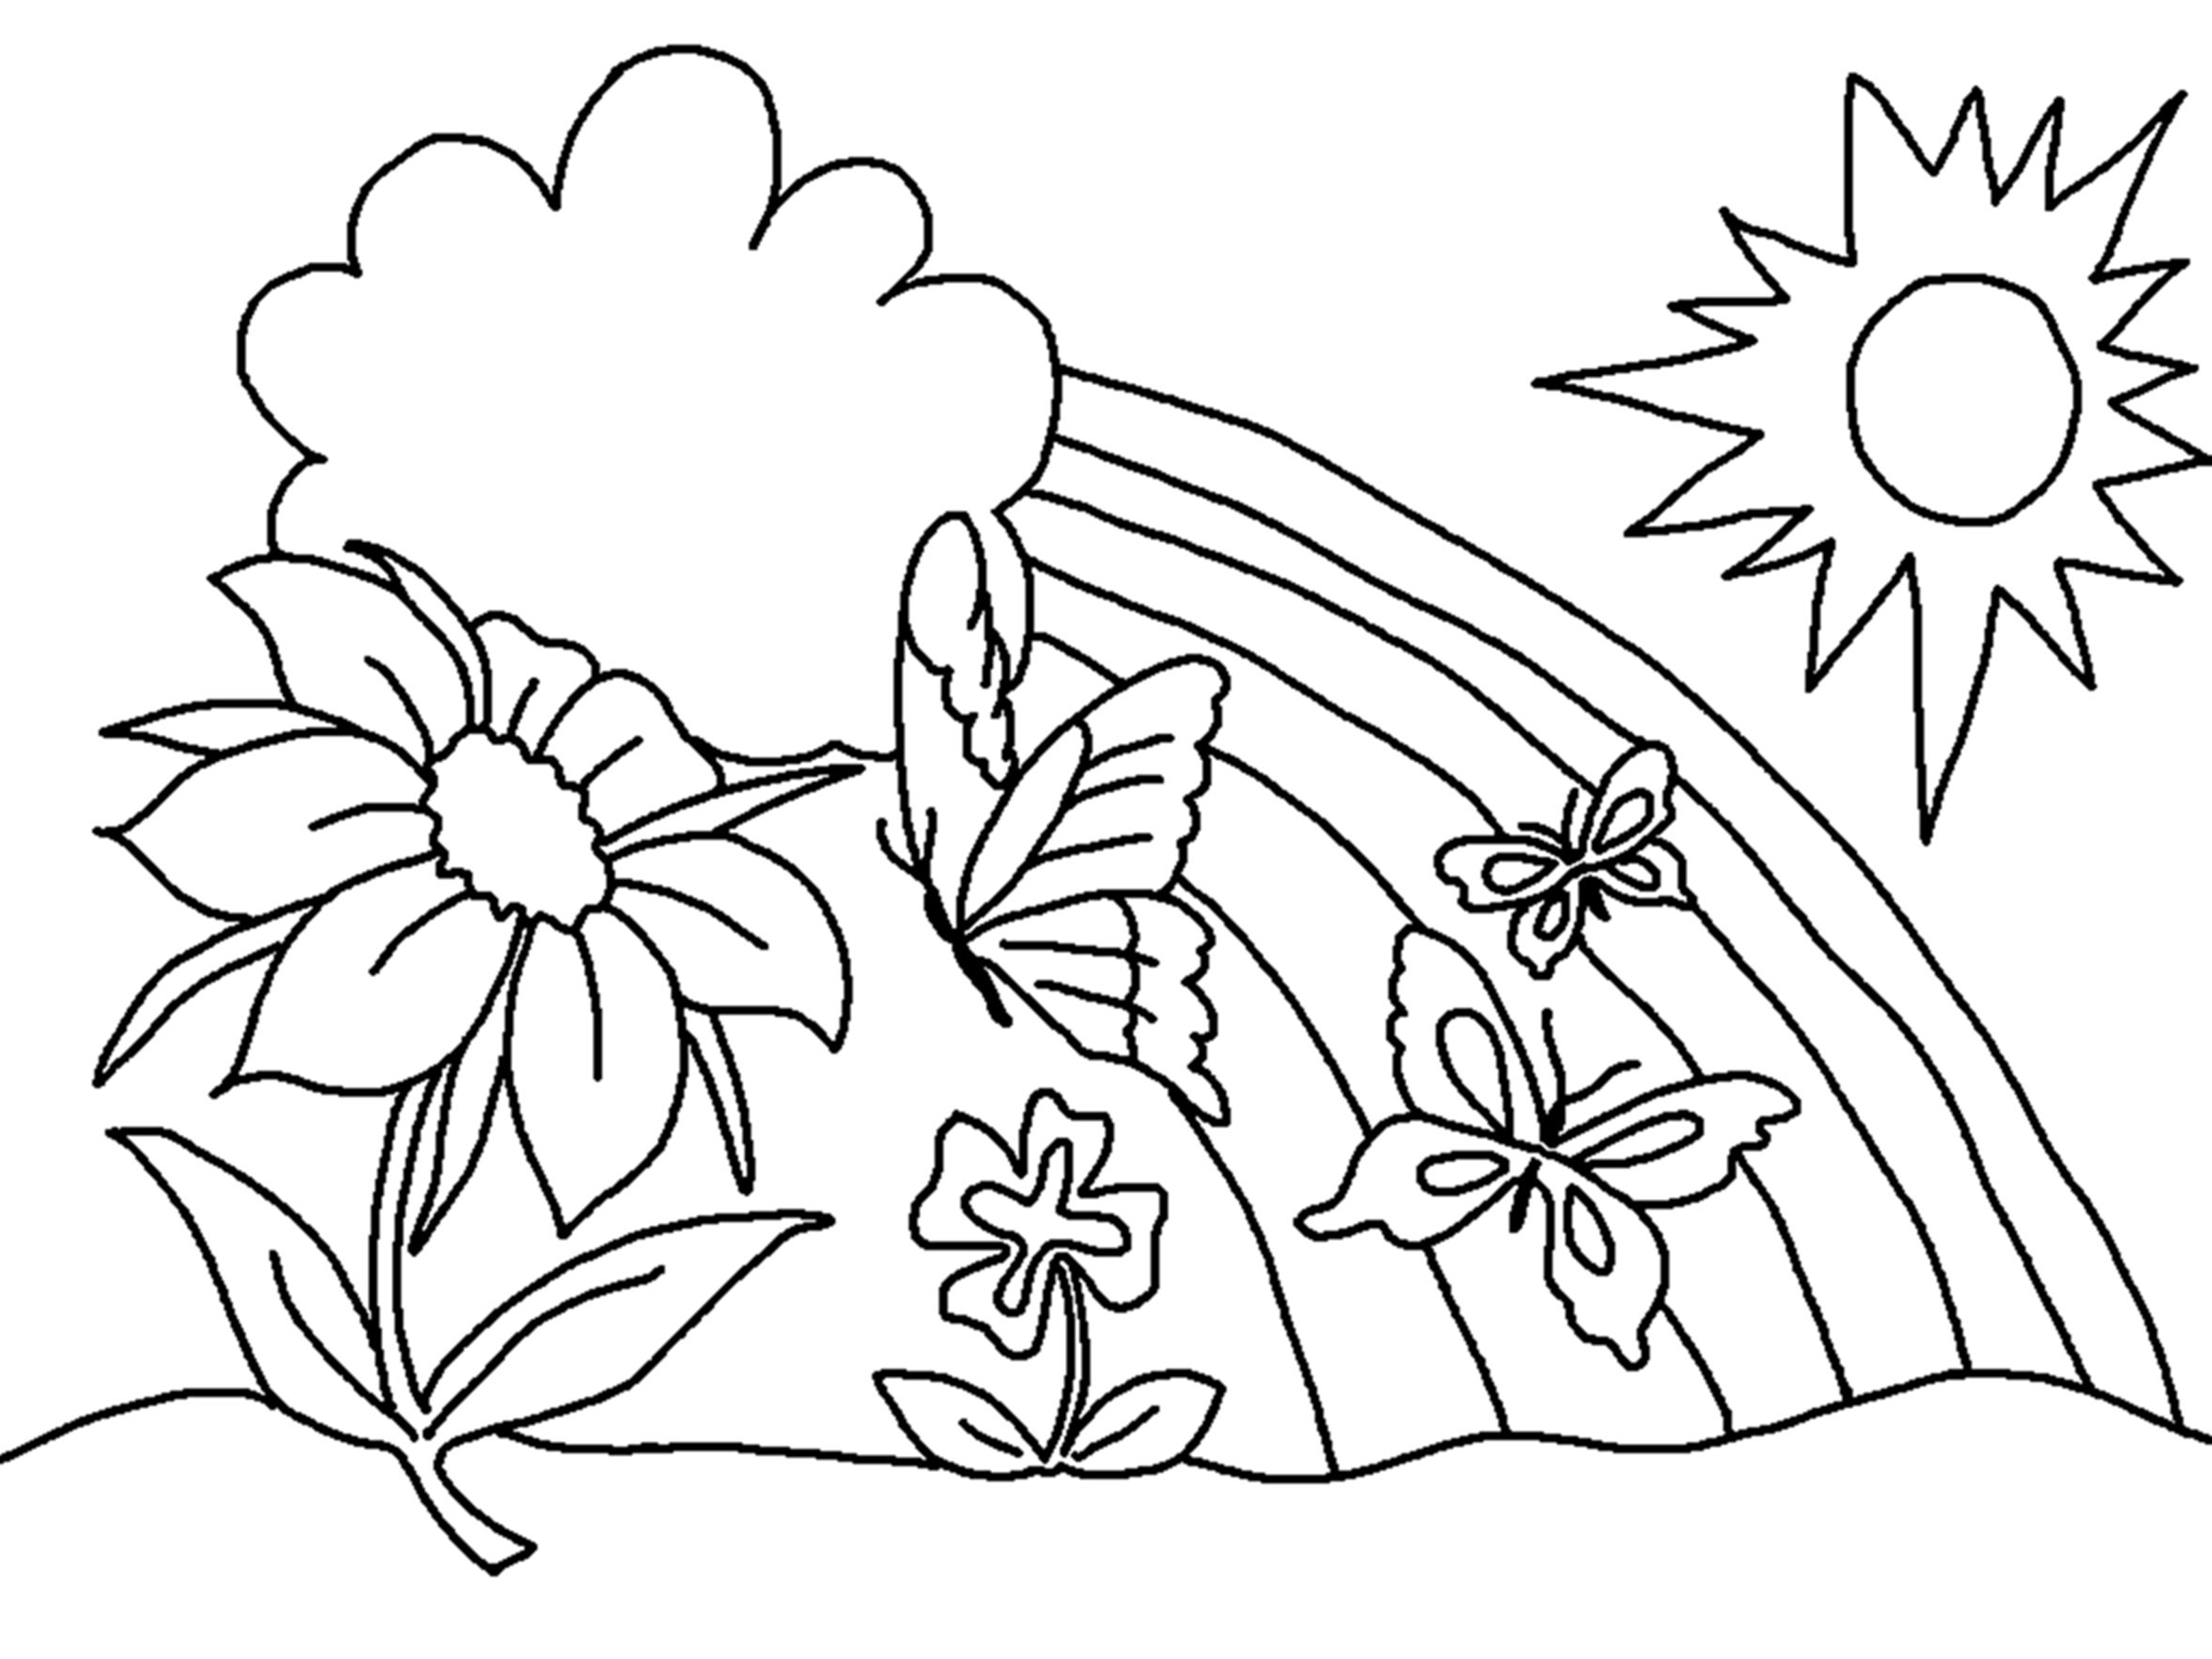 spring coloring pages printable spring coloring pages free spring coloring pages online spring coloring pages for adults teenagers kids sheets - Free Spring Coloring Pages